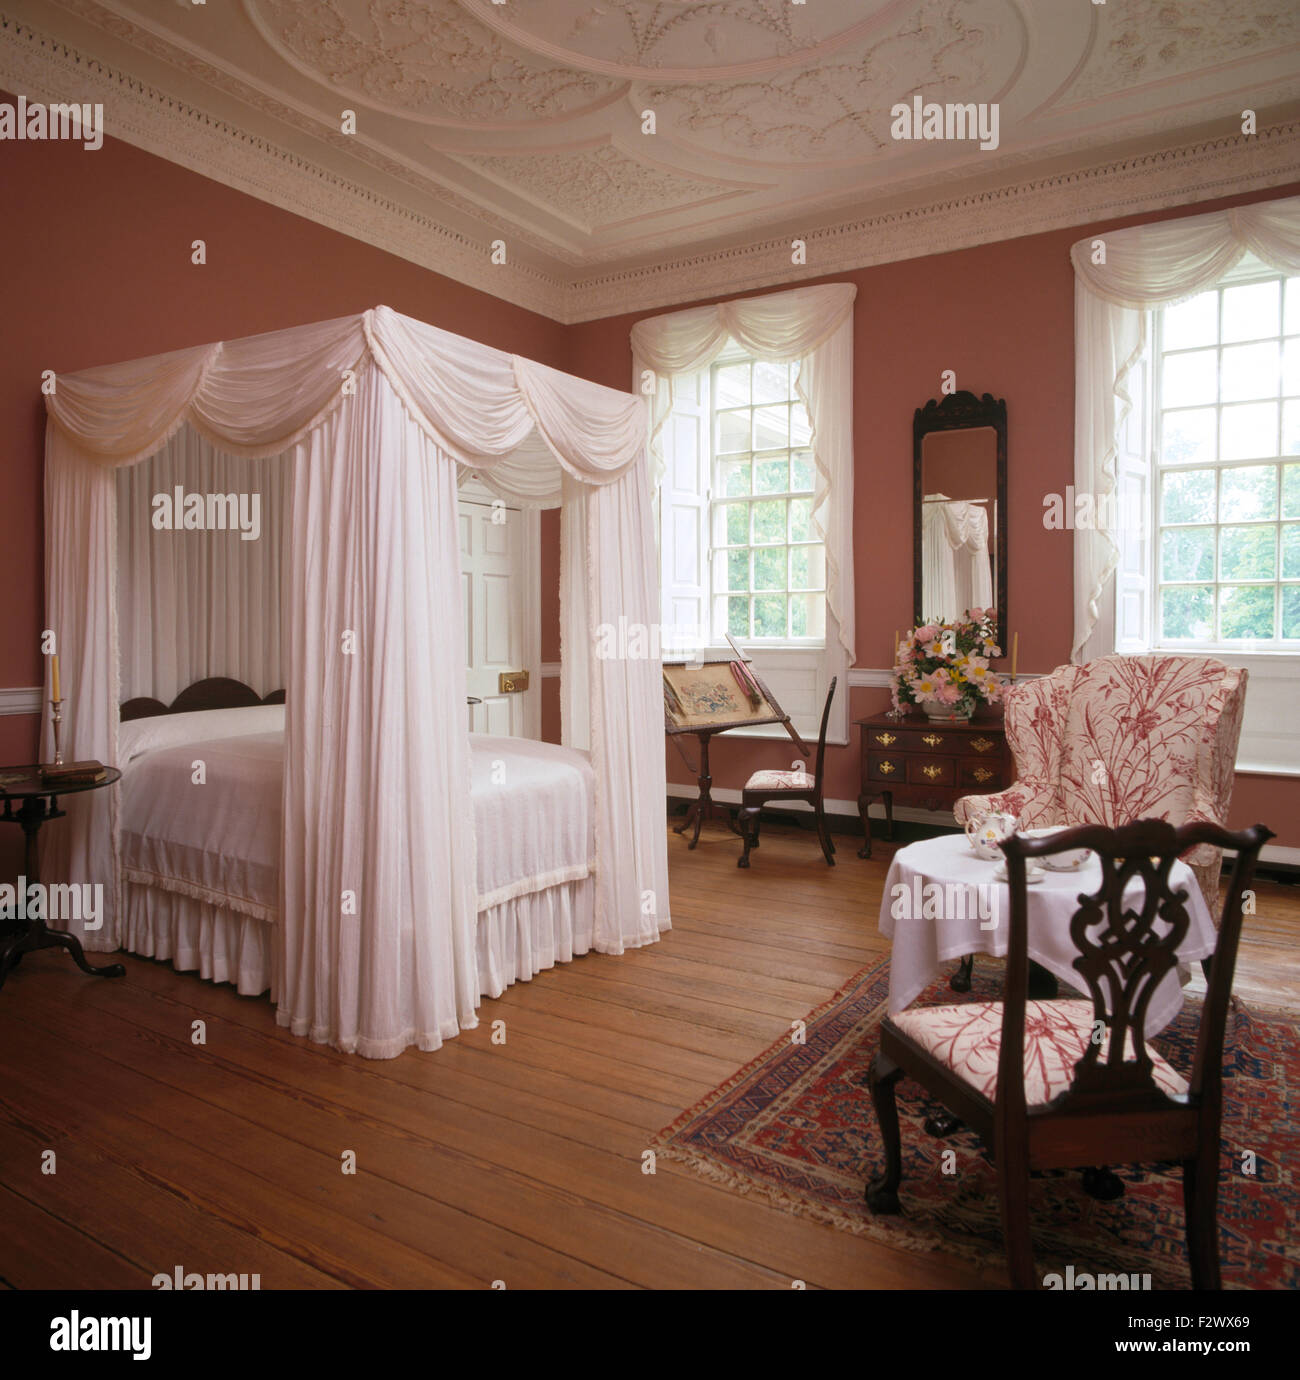 Bedroom ceiling drapes -  White Drapes And Linen On Four Poster Bed In Elegant Colonial Style Bedroom With Wooden Flooring